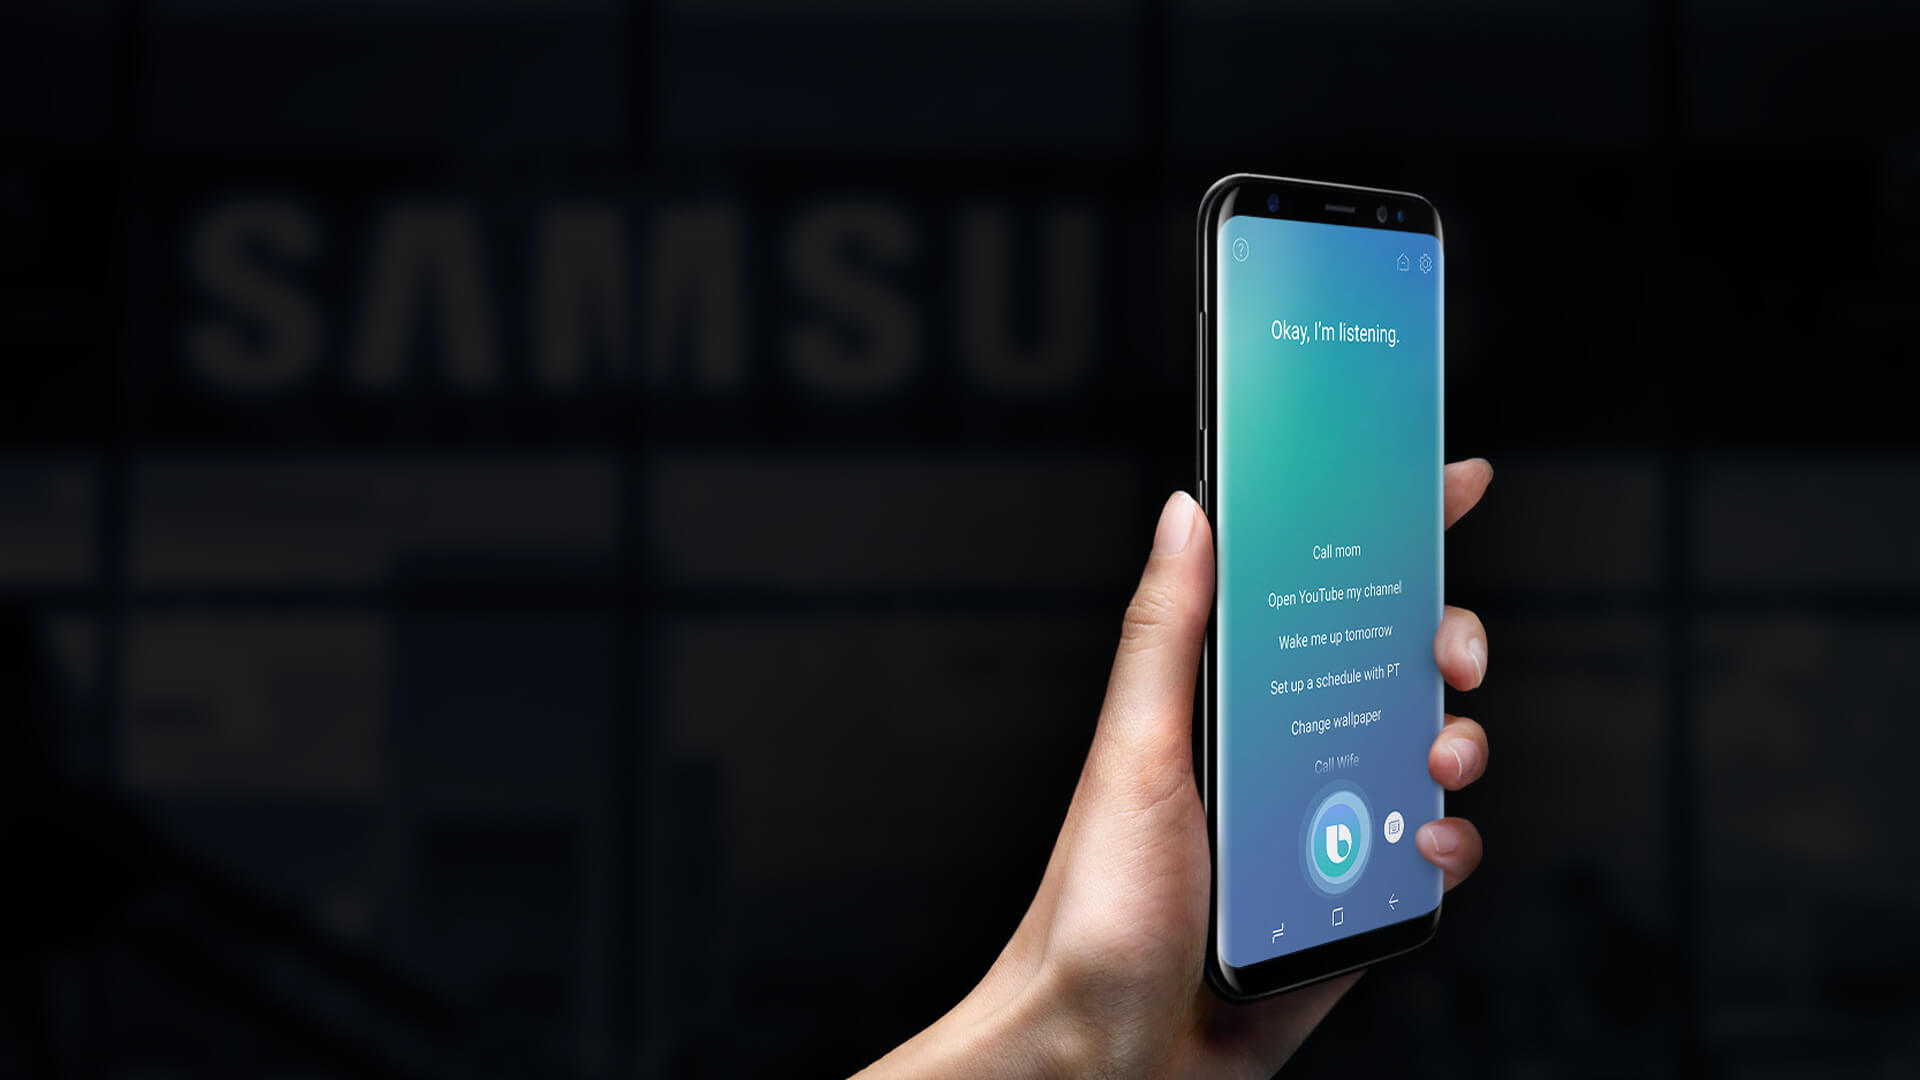 Samsung's Virtual Assistant, Bixby, is Struggling with ...